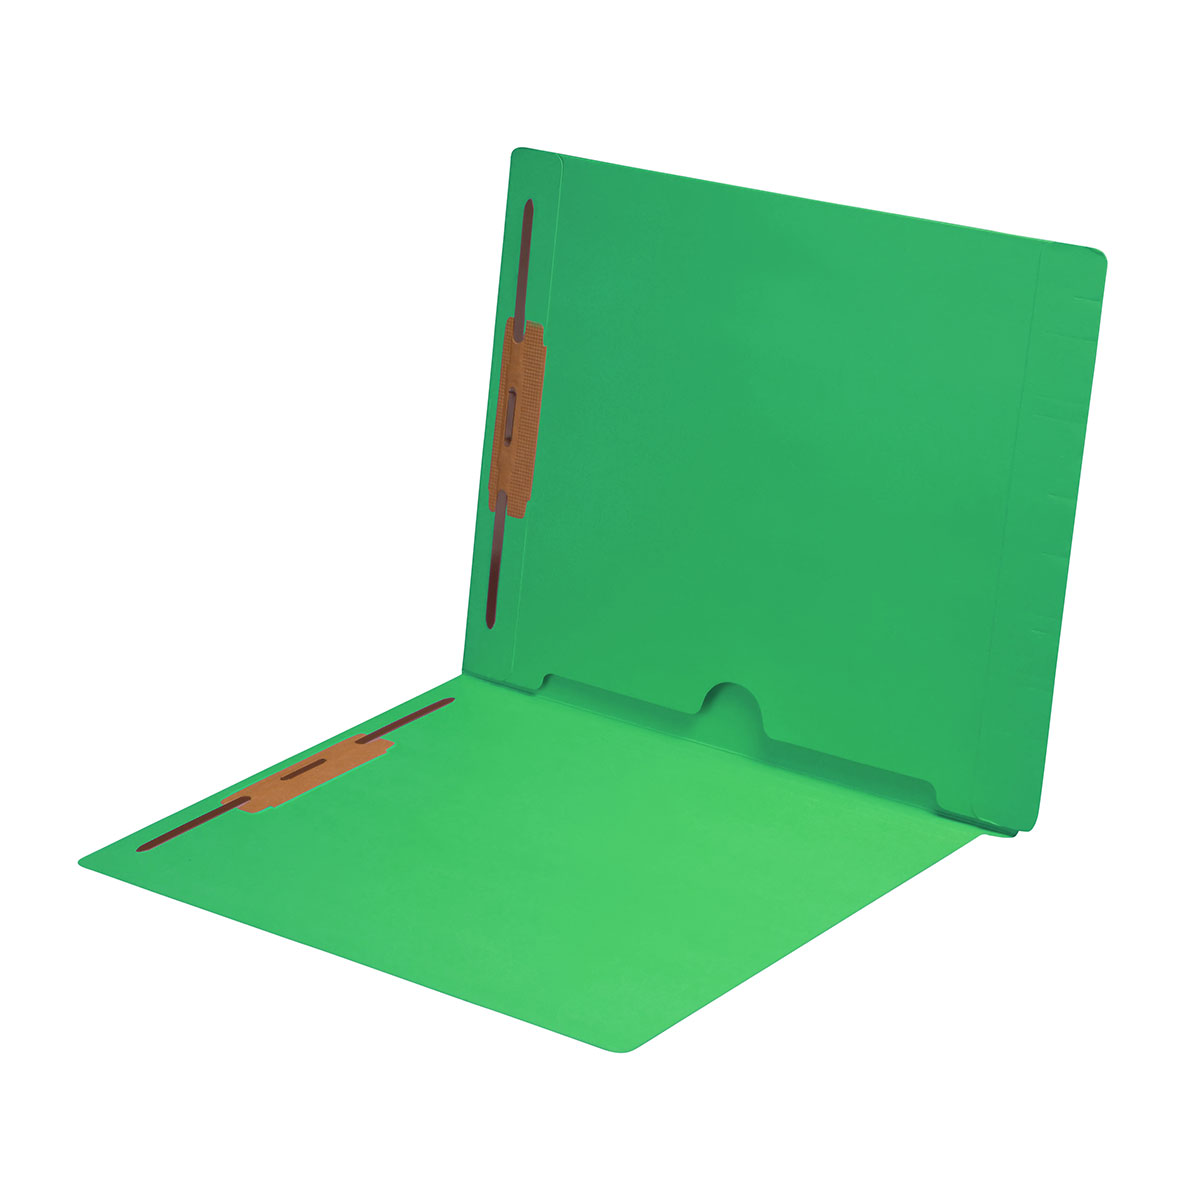 S-9019-GRN - 11 pt Green Folders, Full Cut End Tab, Letter Size, Full Back Pocket, Fasteners Pos #1 & #3 (Box of 50)